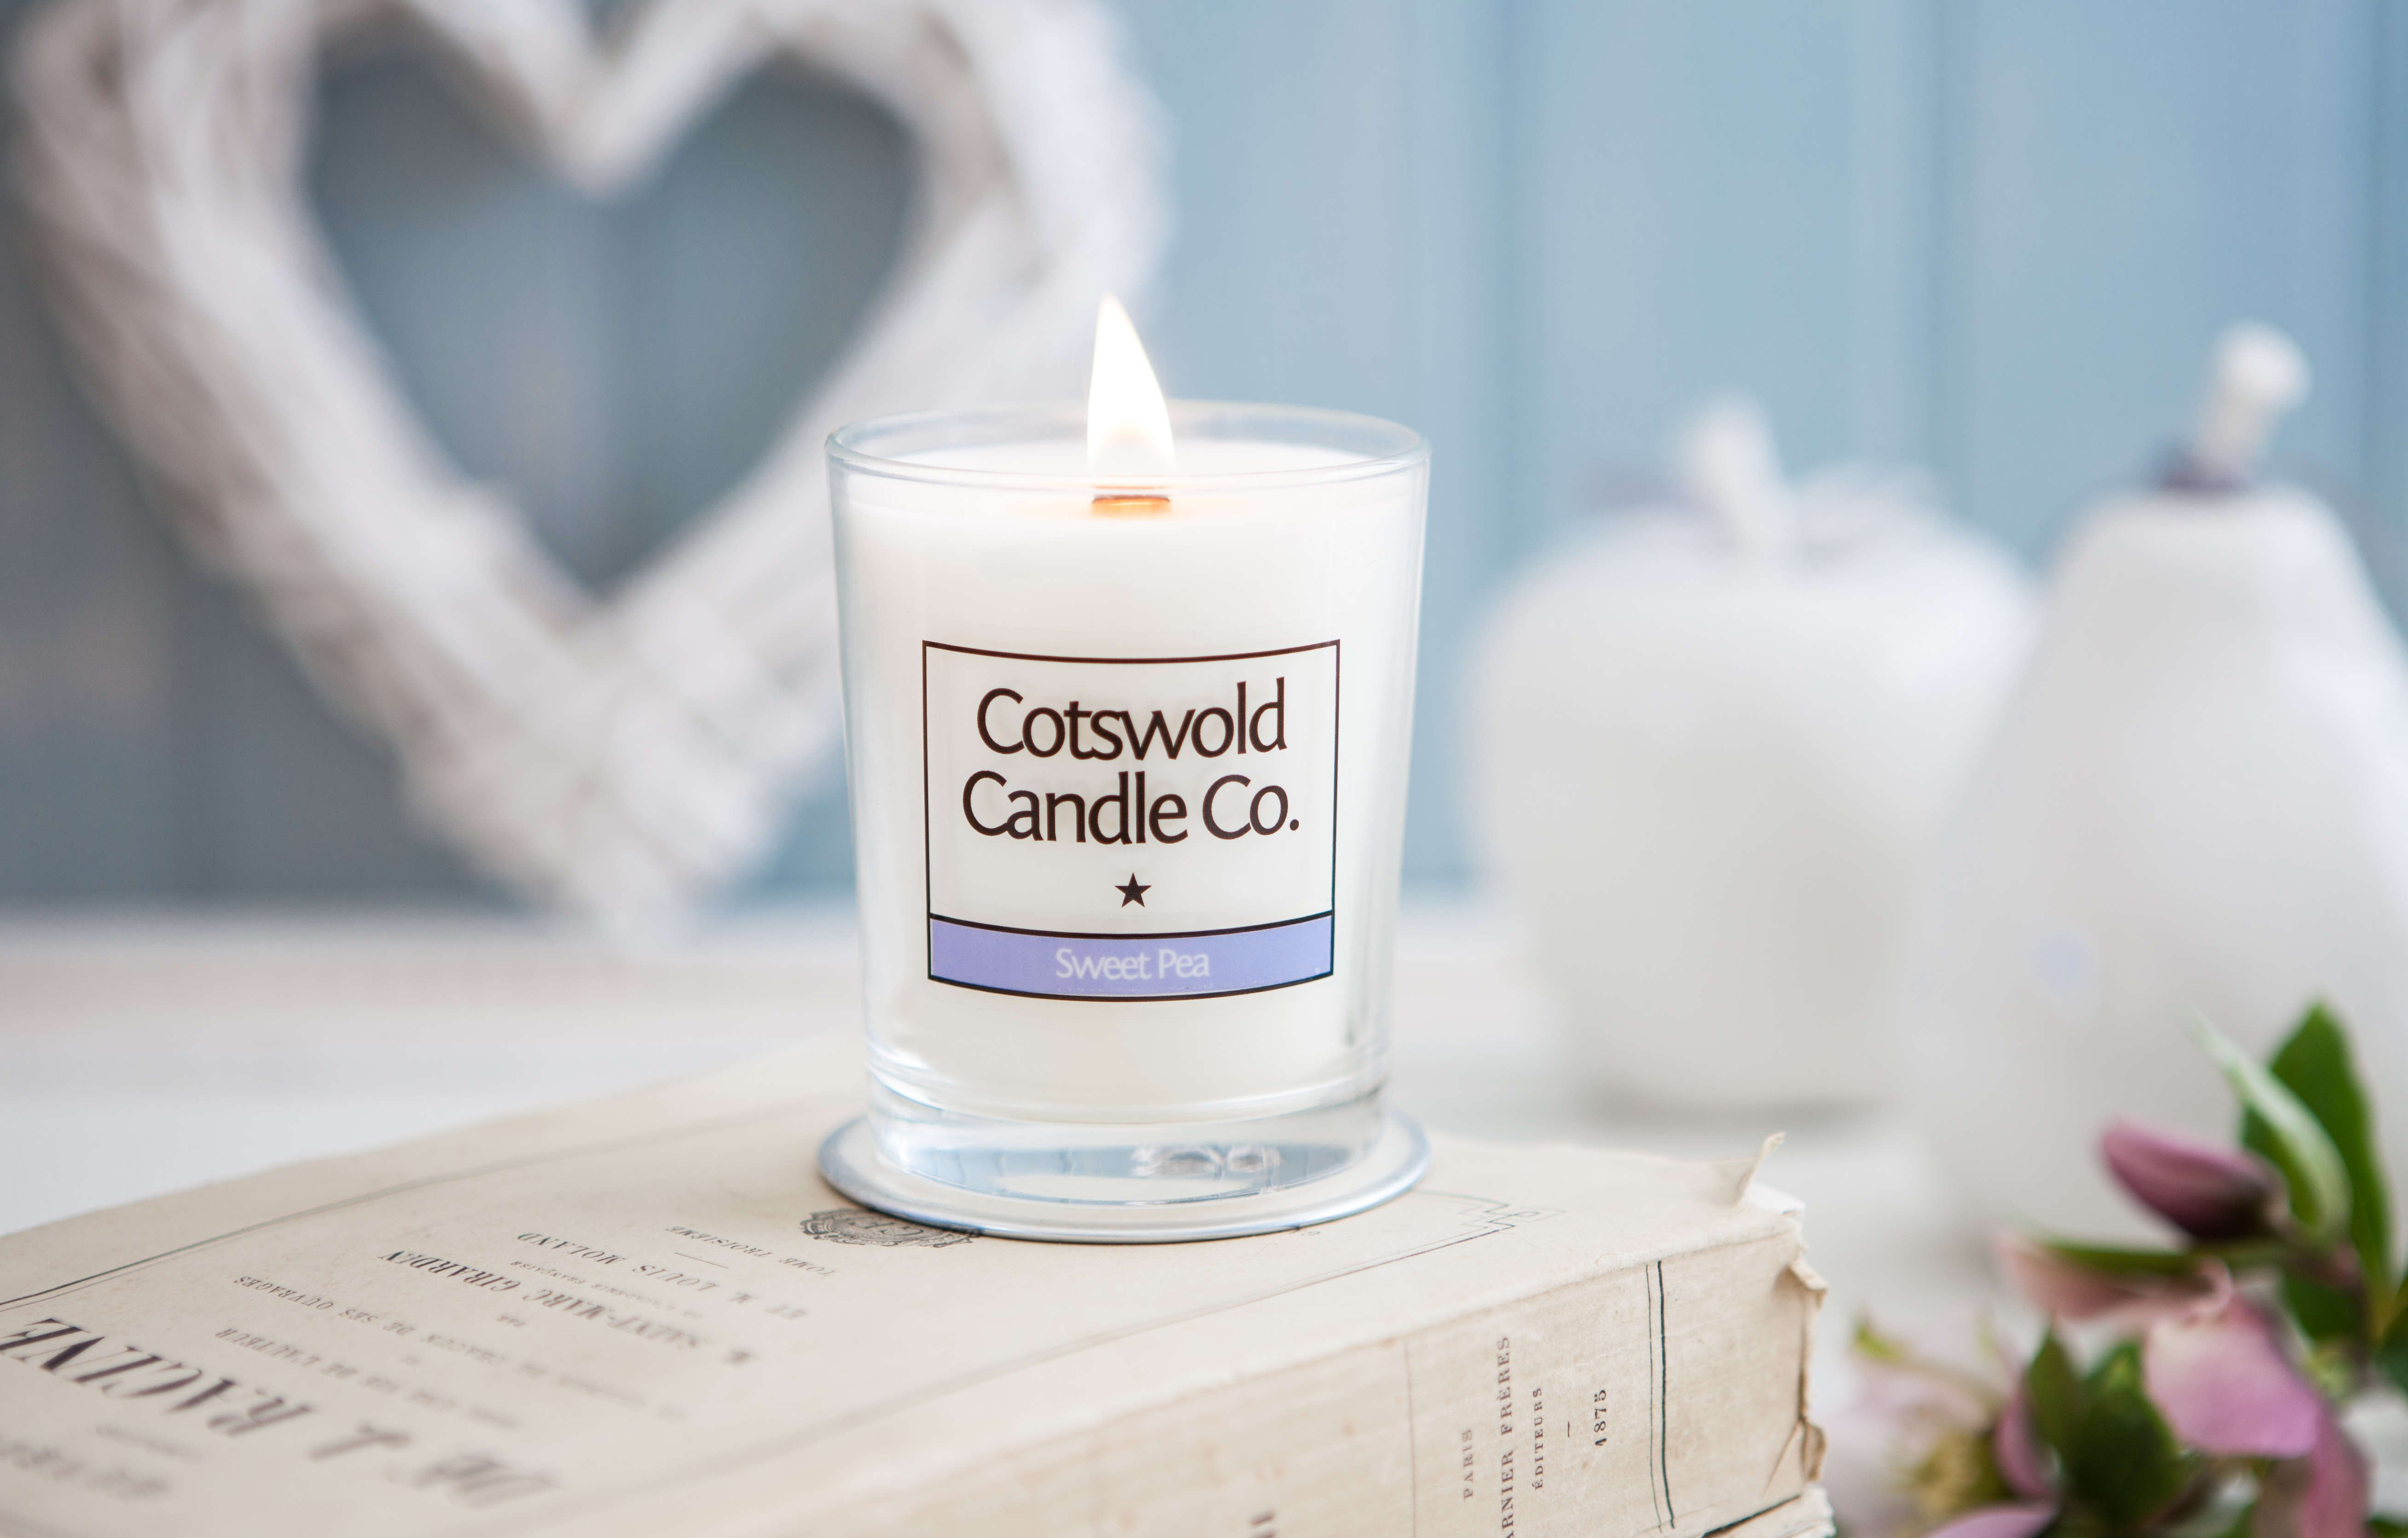 Cotswold Candle Co